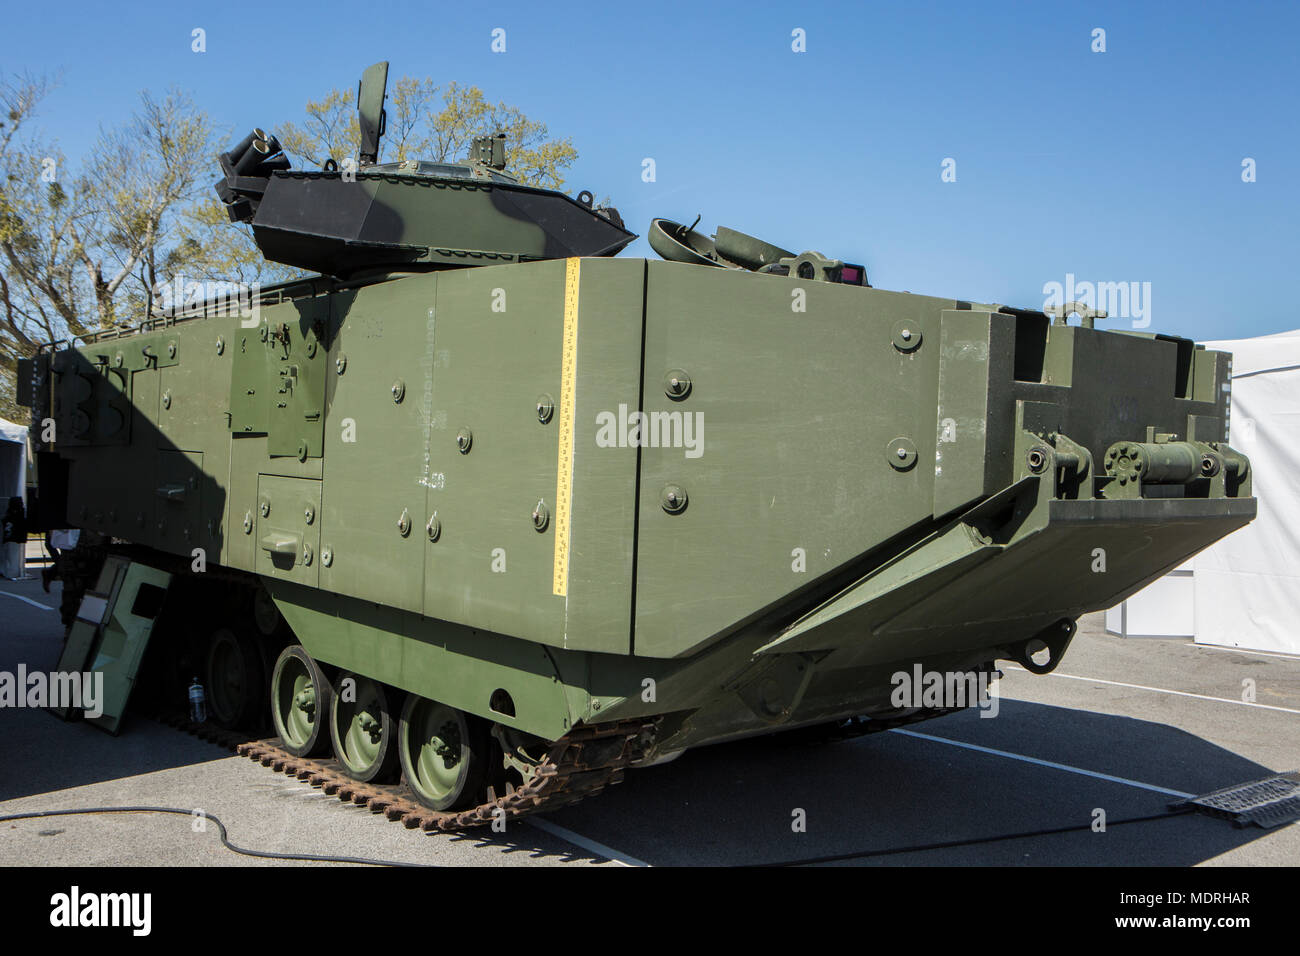 Amphibious Assault Vehicle Aav On Display At Marine Expo South On Camp Lejeune N C April 12